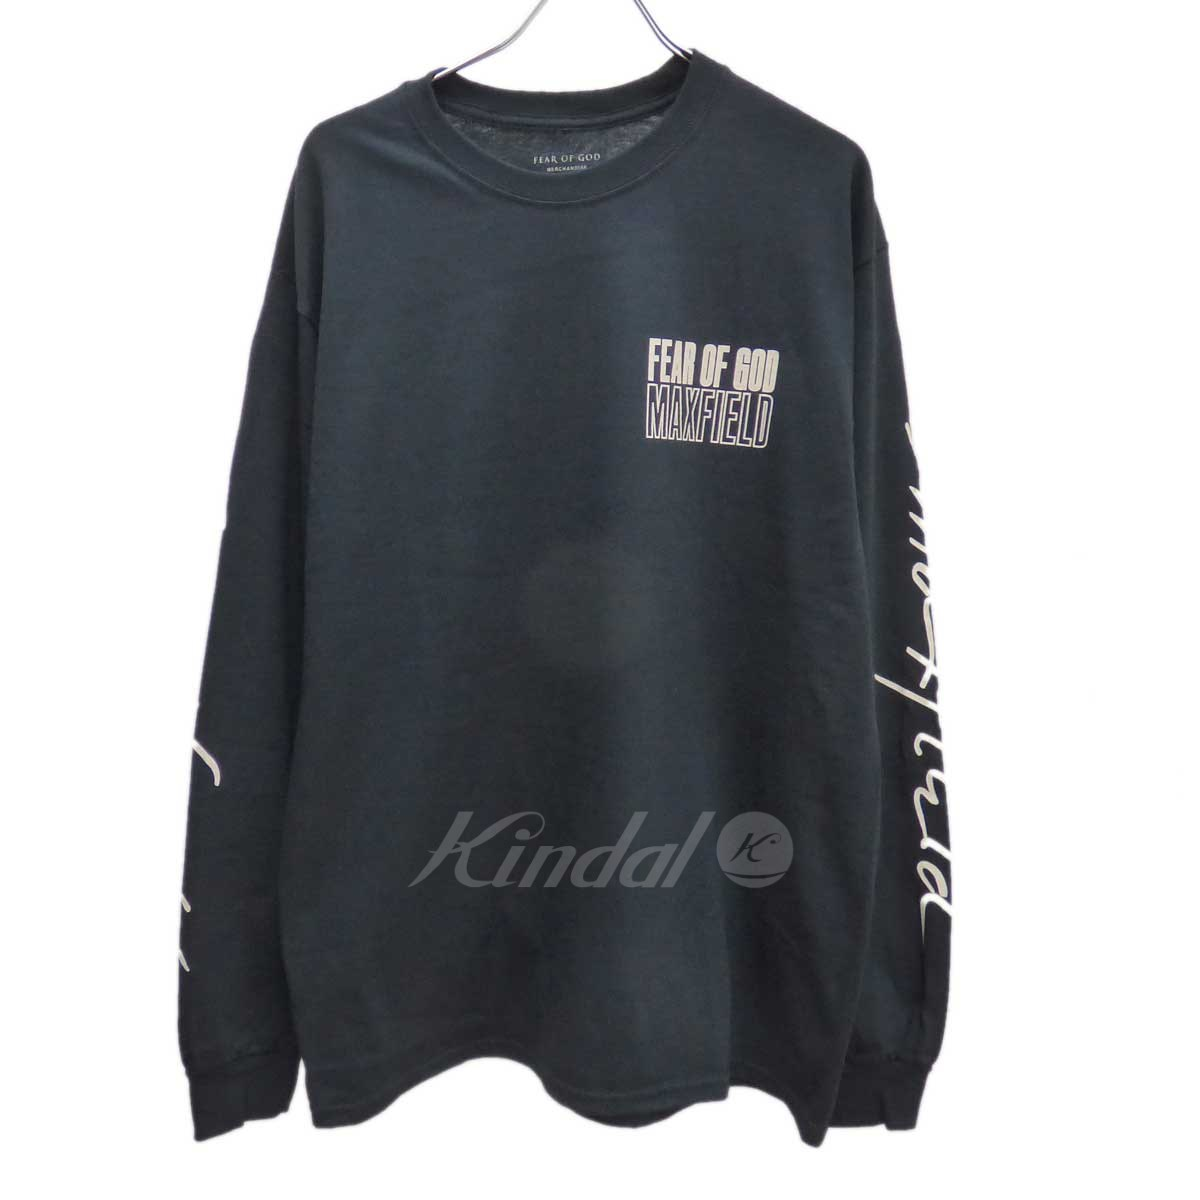 【中古】FEAR OF GOD House of God Staff Tee ×MAXFIELD 長袖シャツ 【送料無料】 【131655】 【KIND1550】